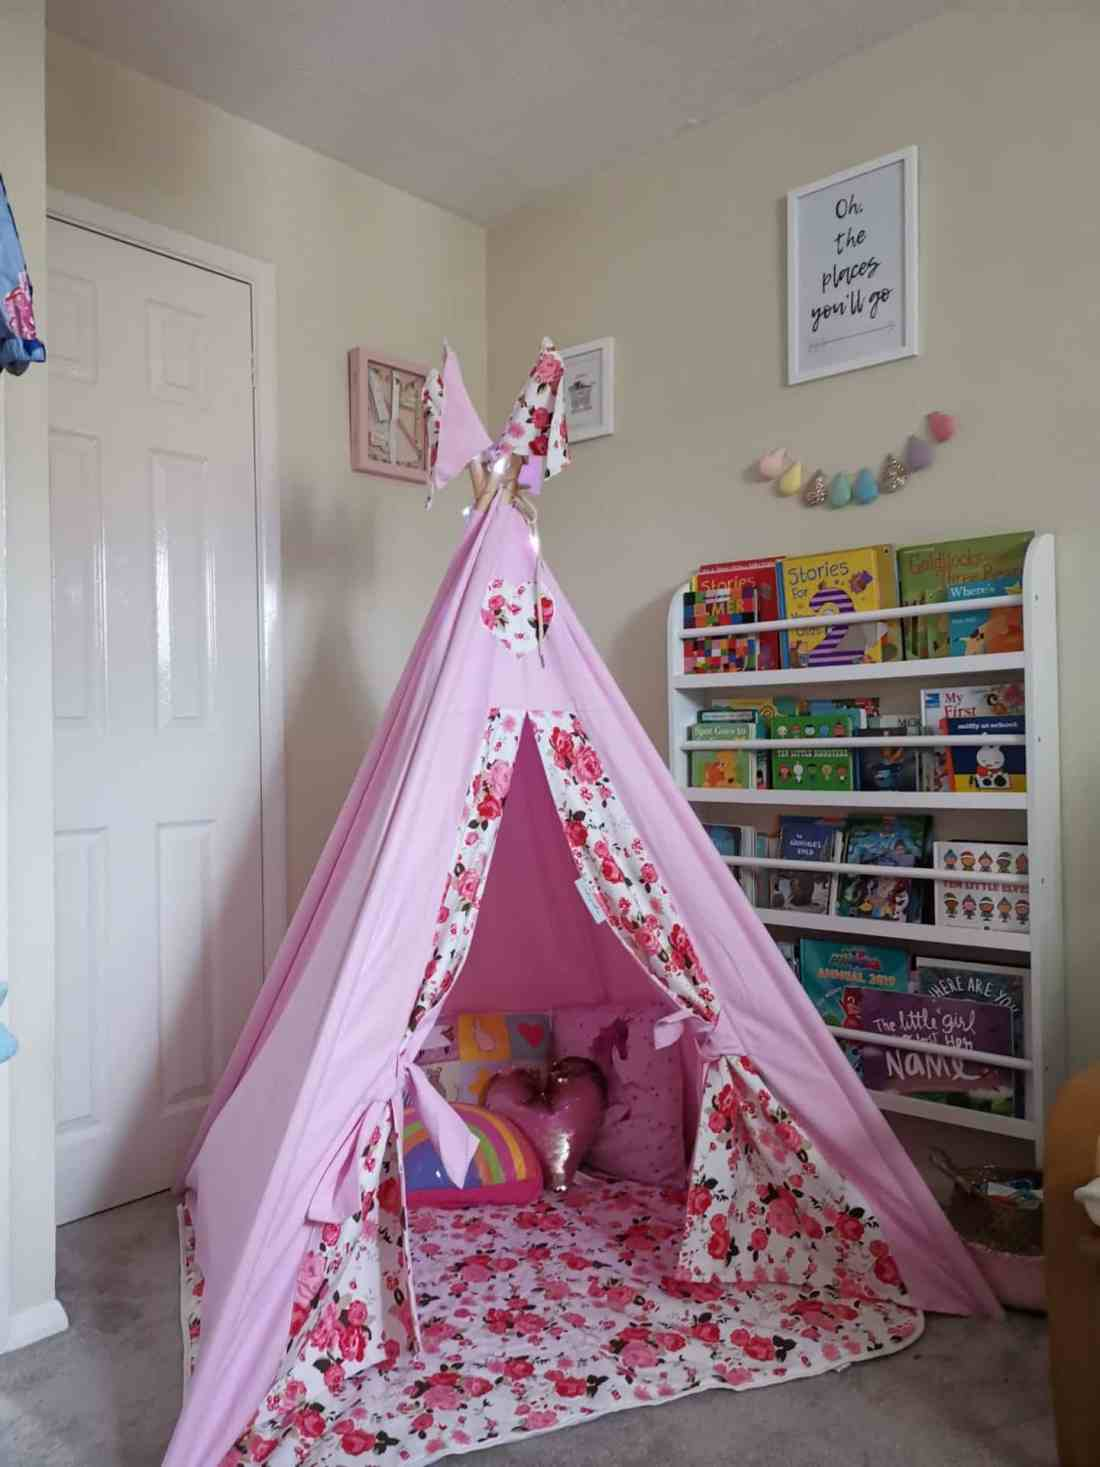 Toddler den in a playroom with bookcase